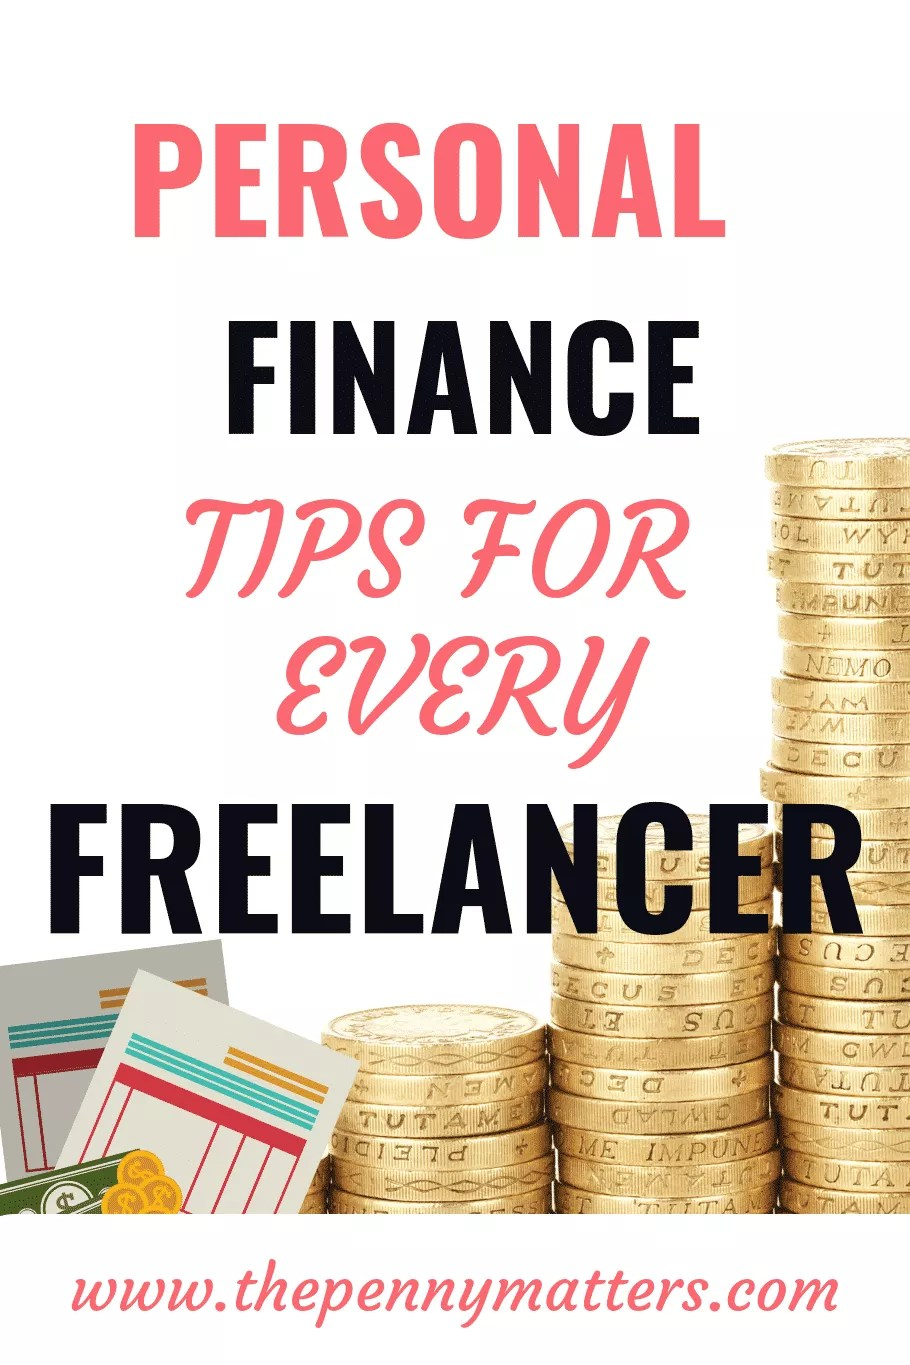 Personal finance tips for every freelancer